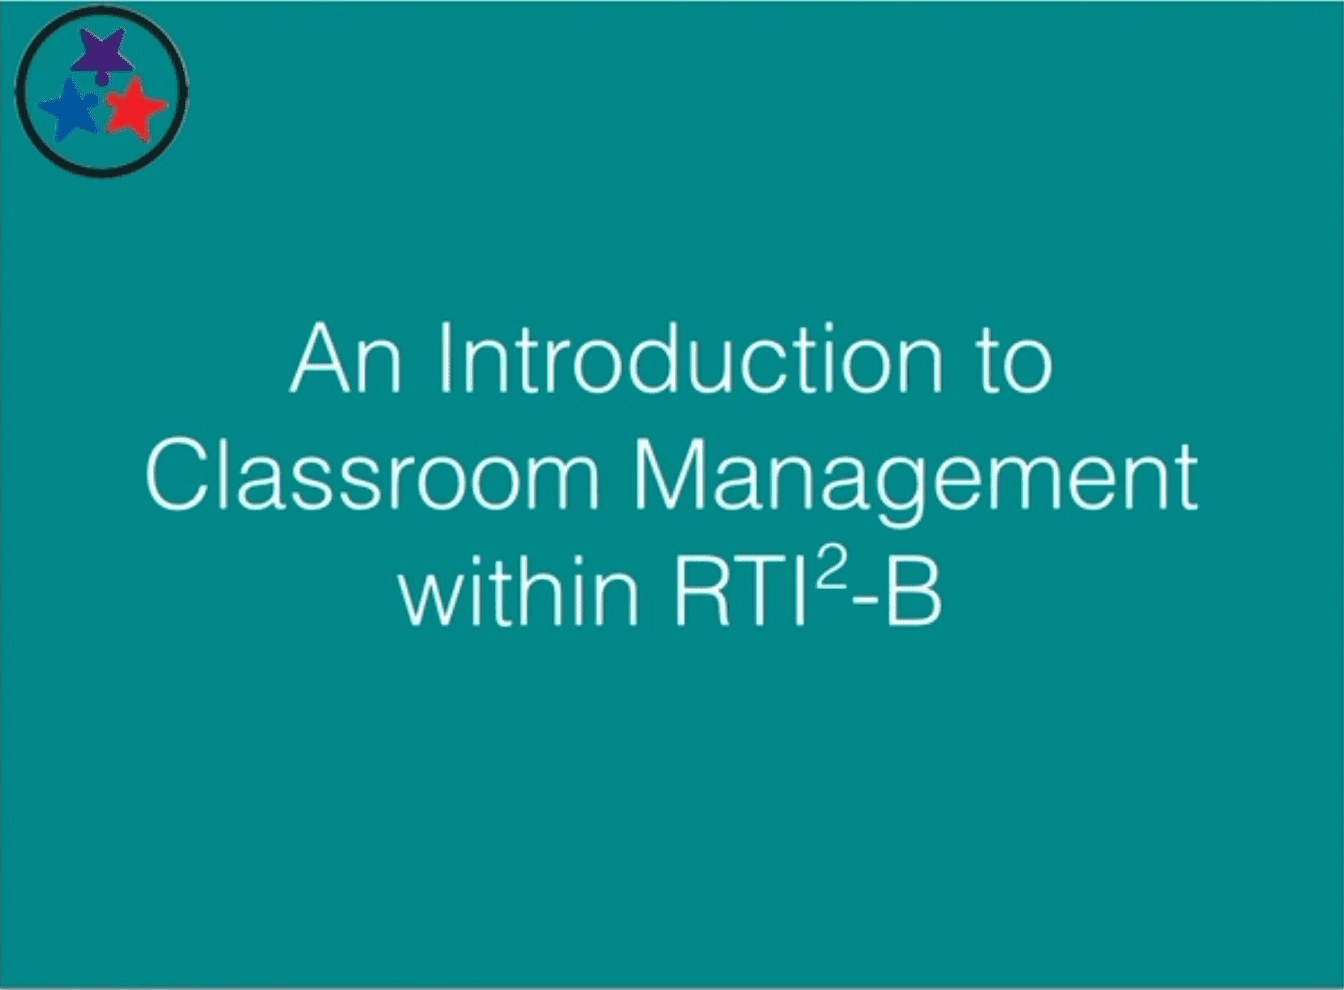 Classroom Management 1 - An Introduction to Classroom Management within RTI2-B